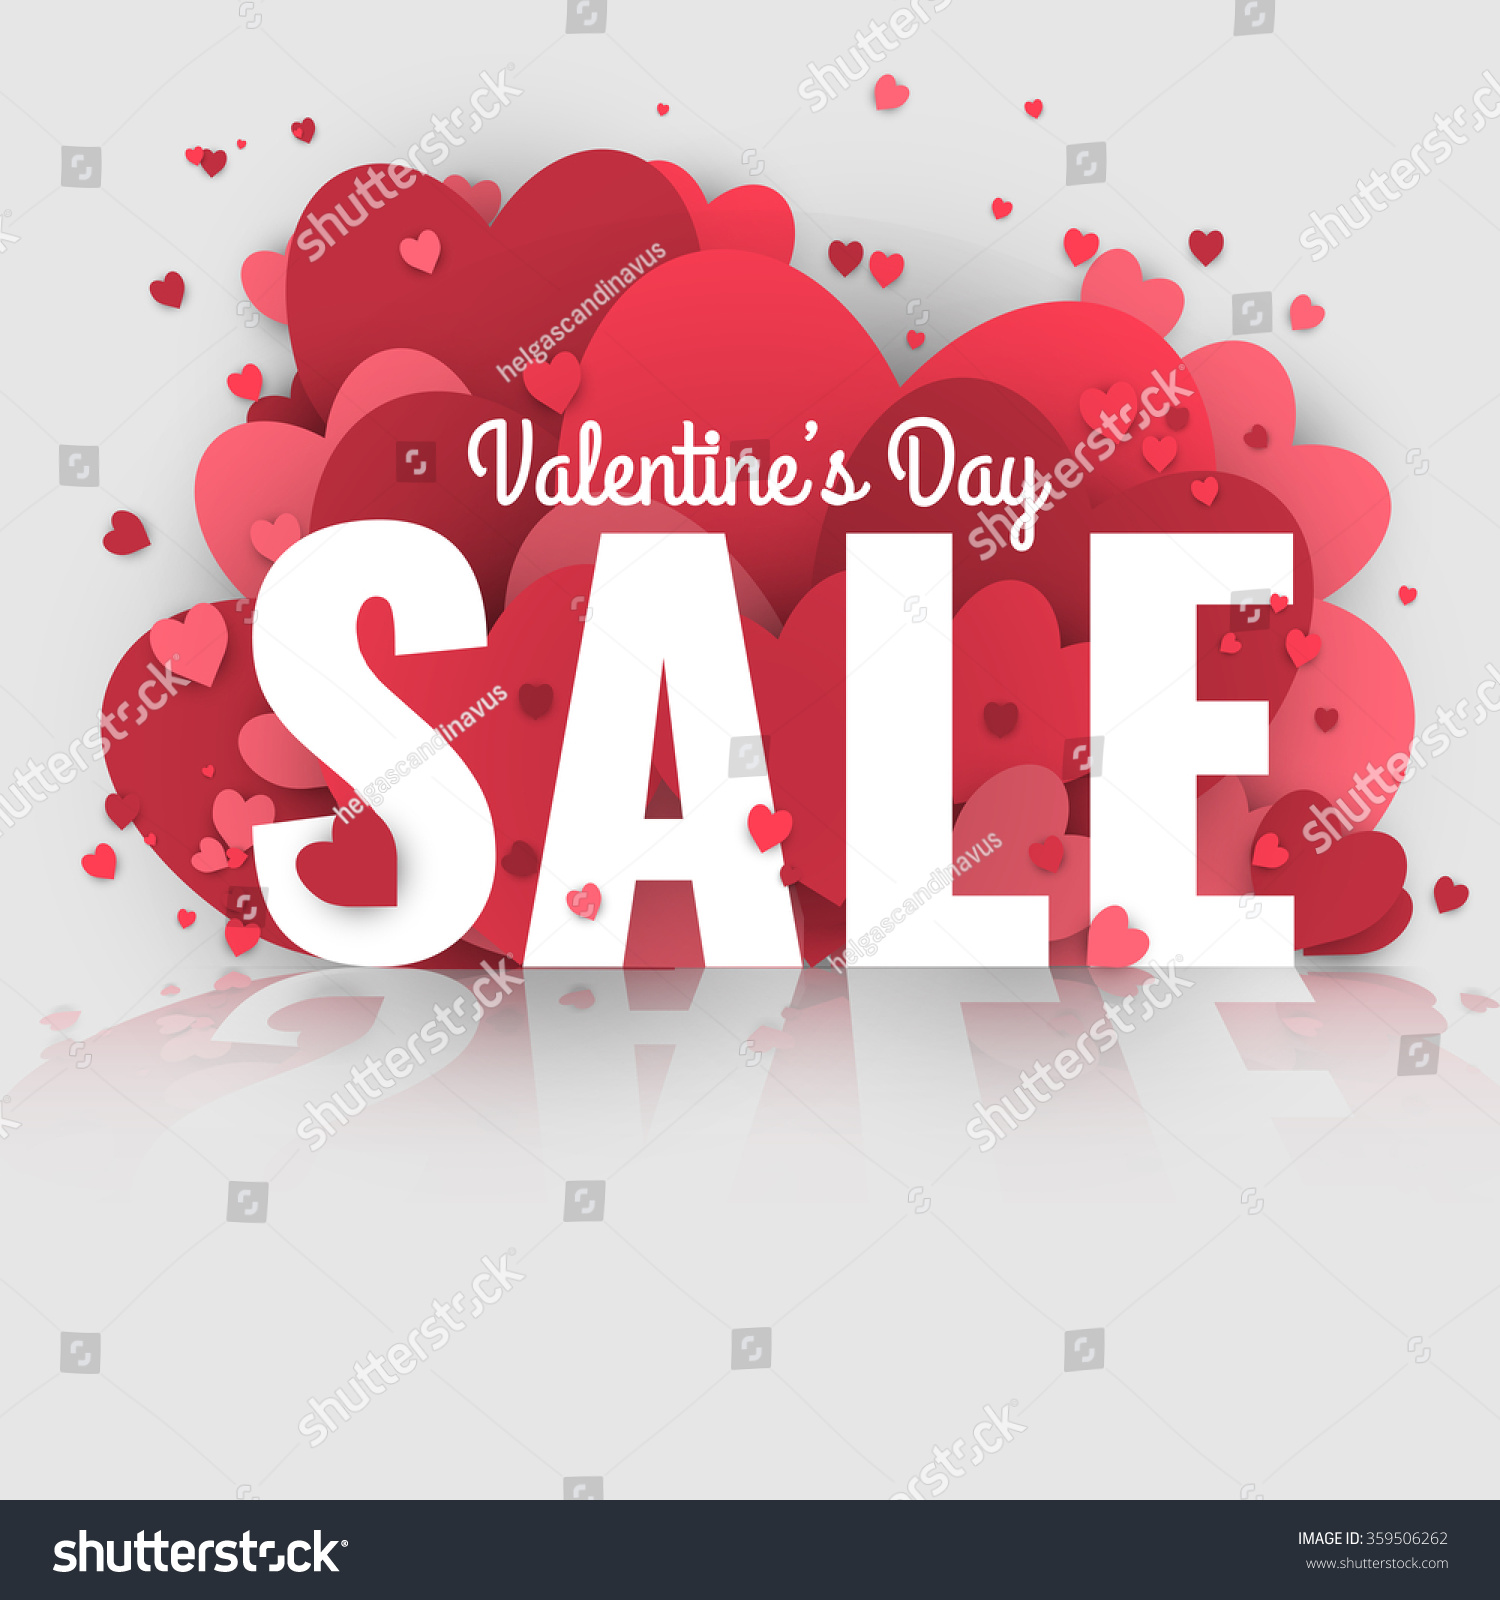 Valentines Day Sale Letters Hearts Valentine Stock Vector